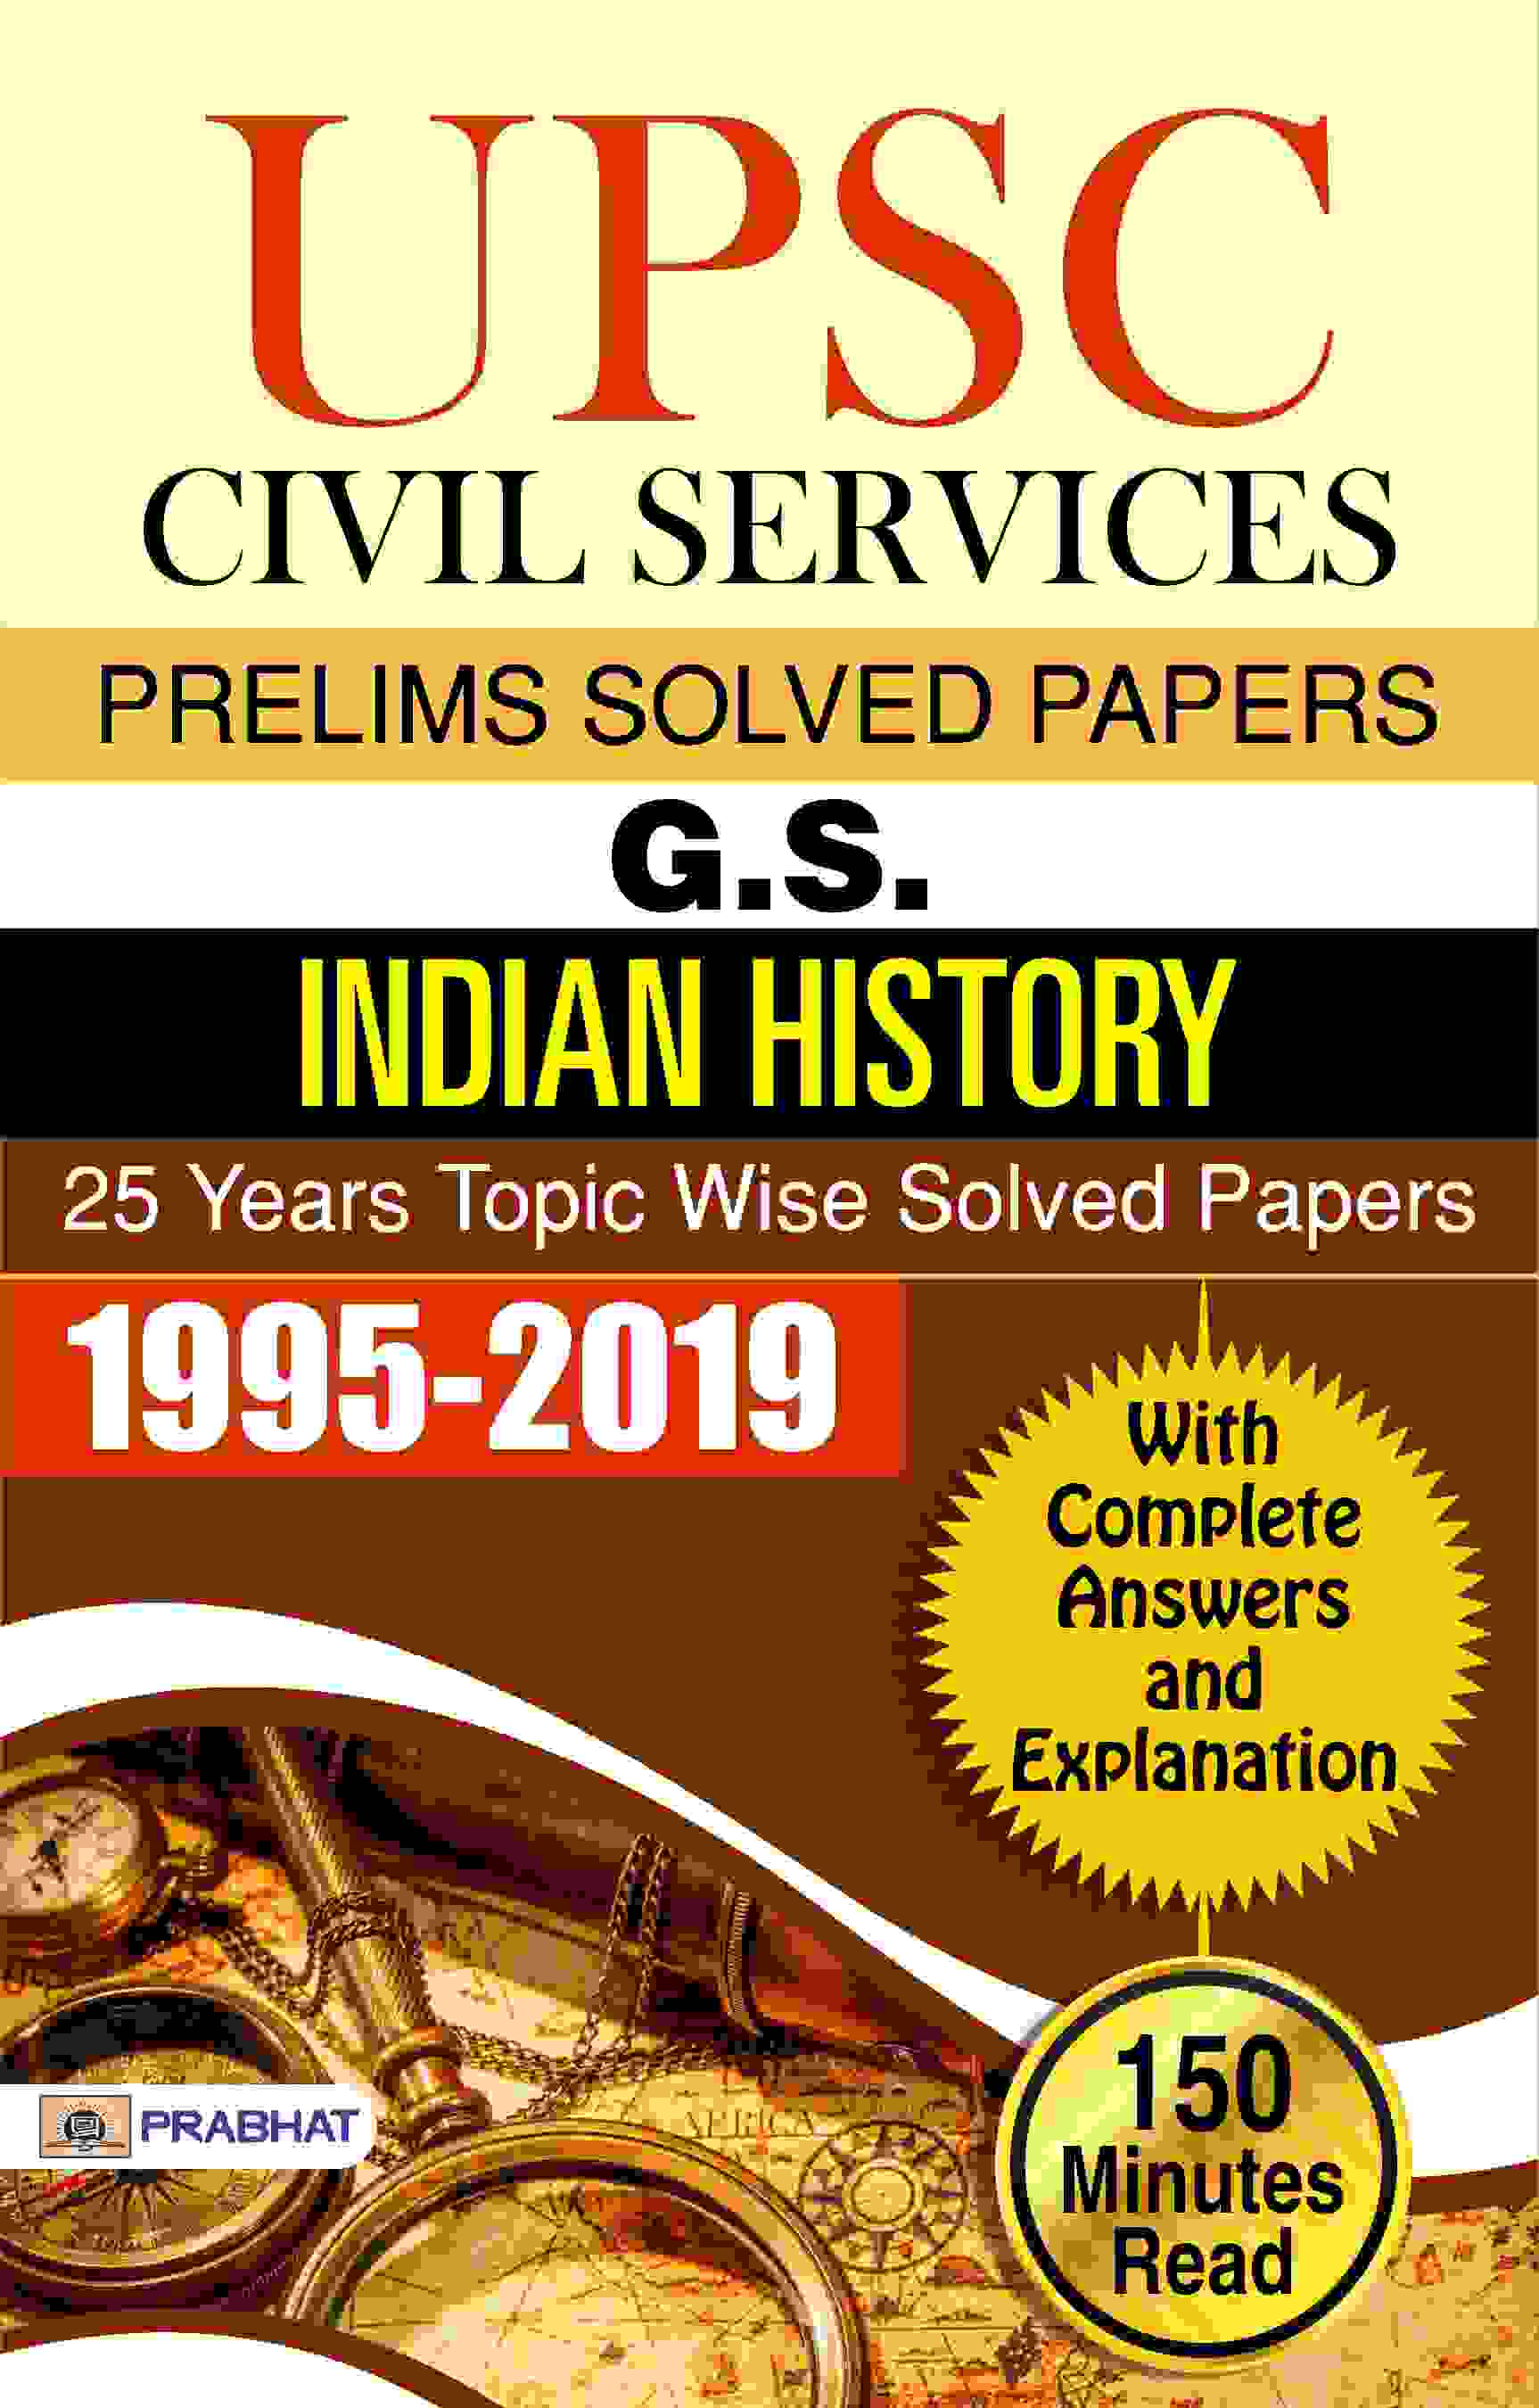 UPSC Civil Services Prelims Solved Papers G.S. Indian History 25 Years...